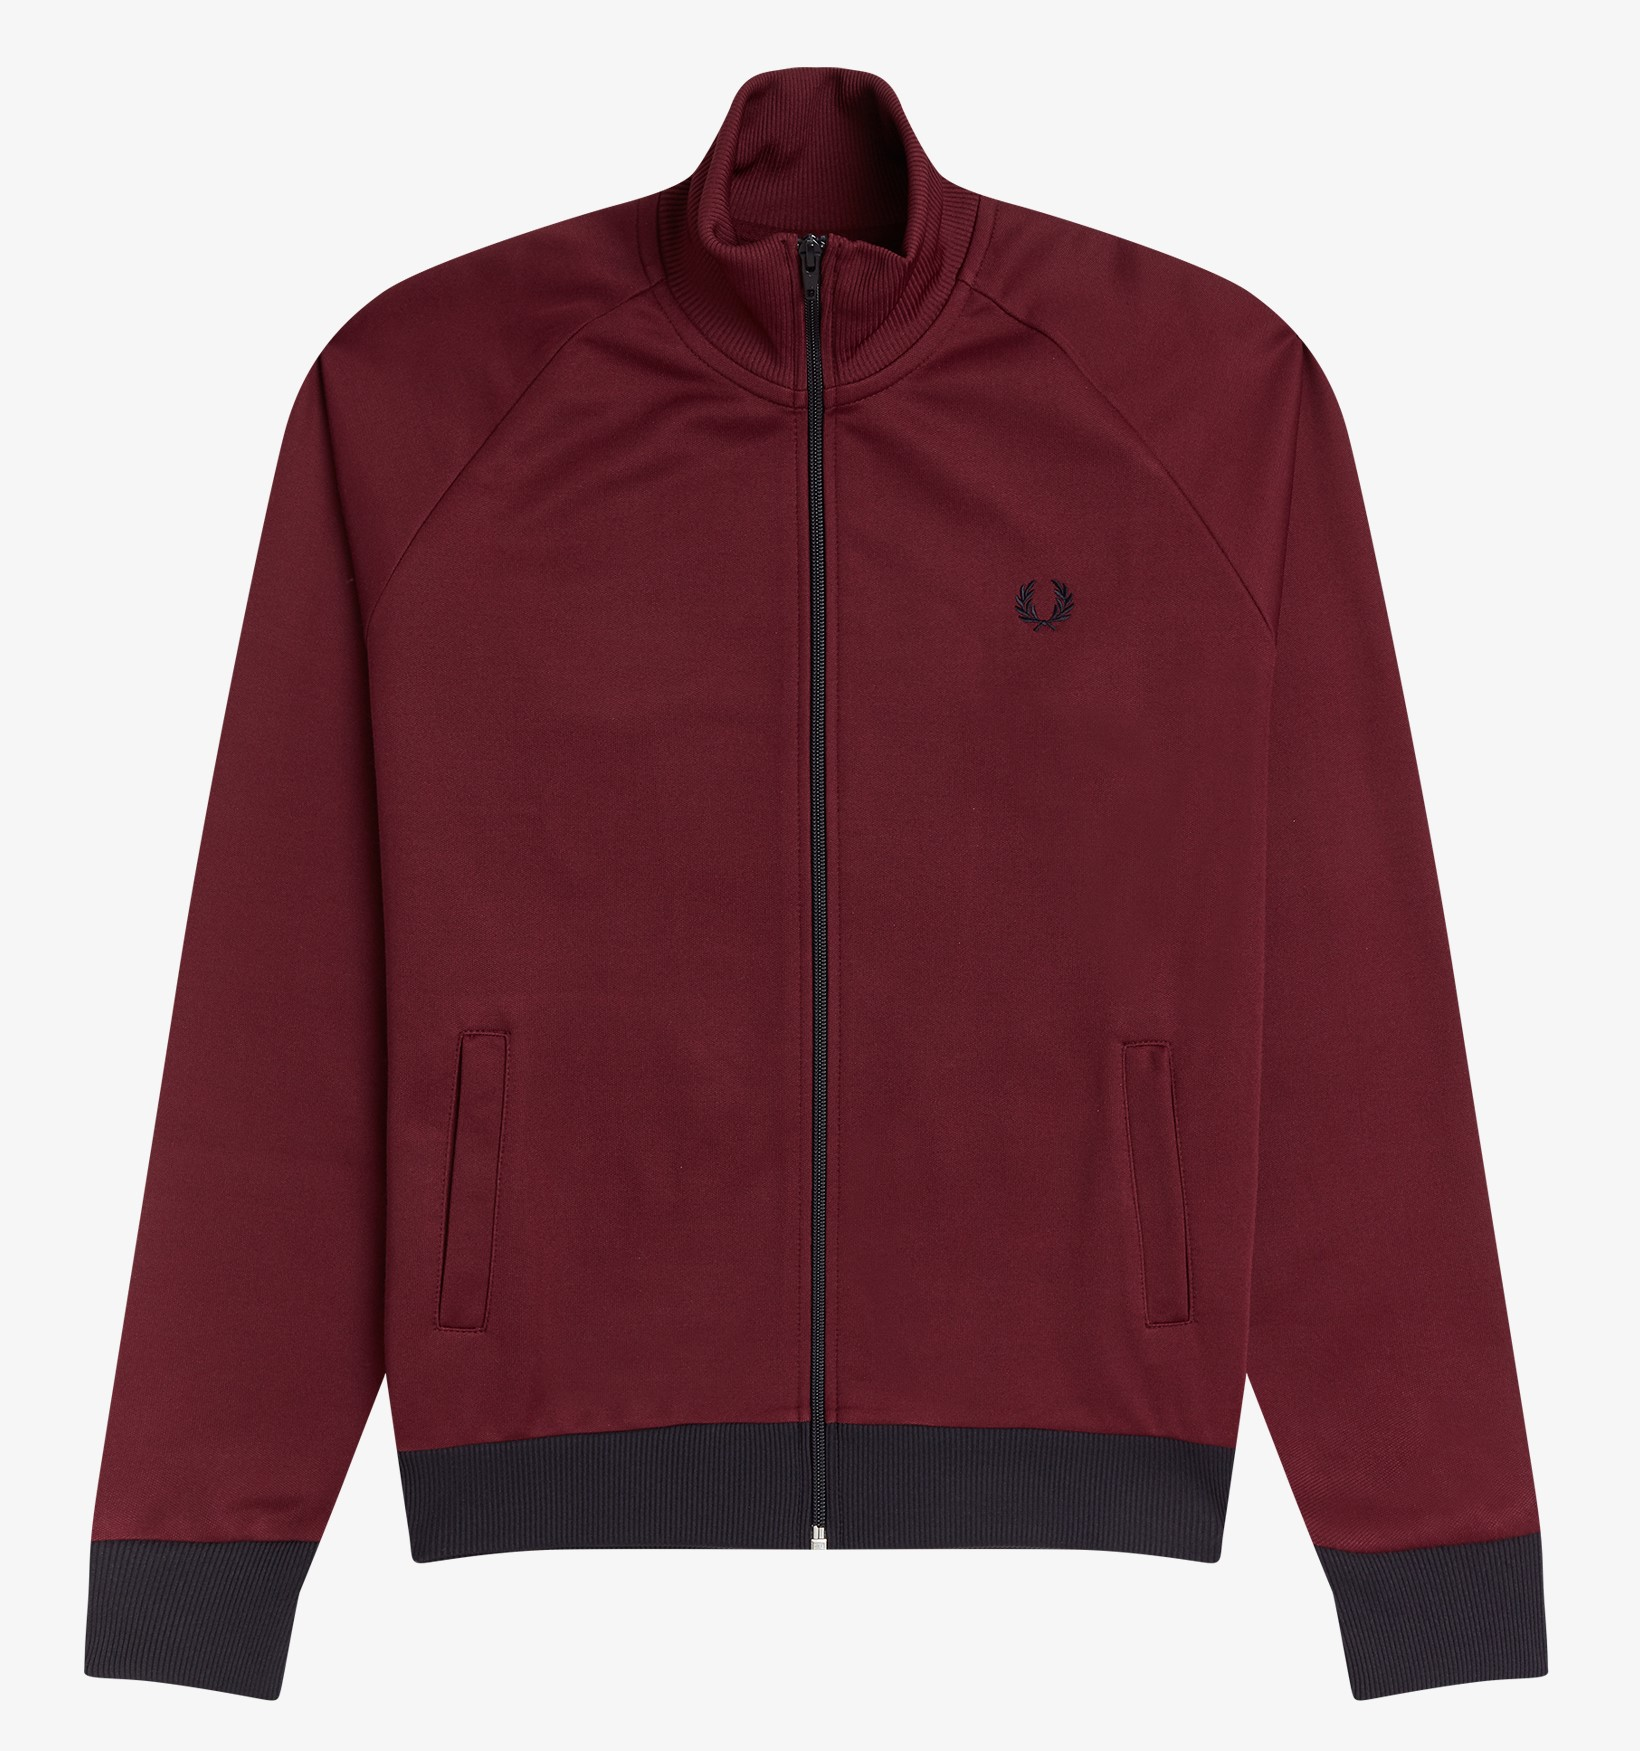 Fred Perry - CONTRAST TRIM TRACK JACKET - Aubergine